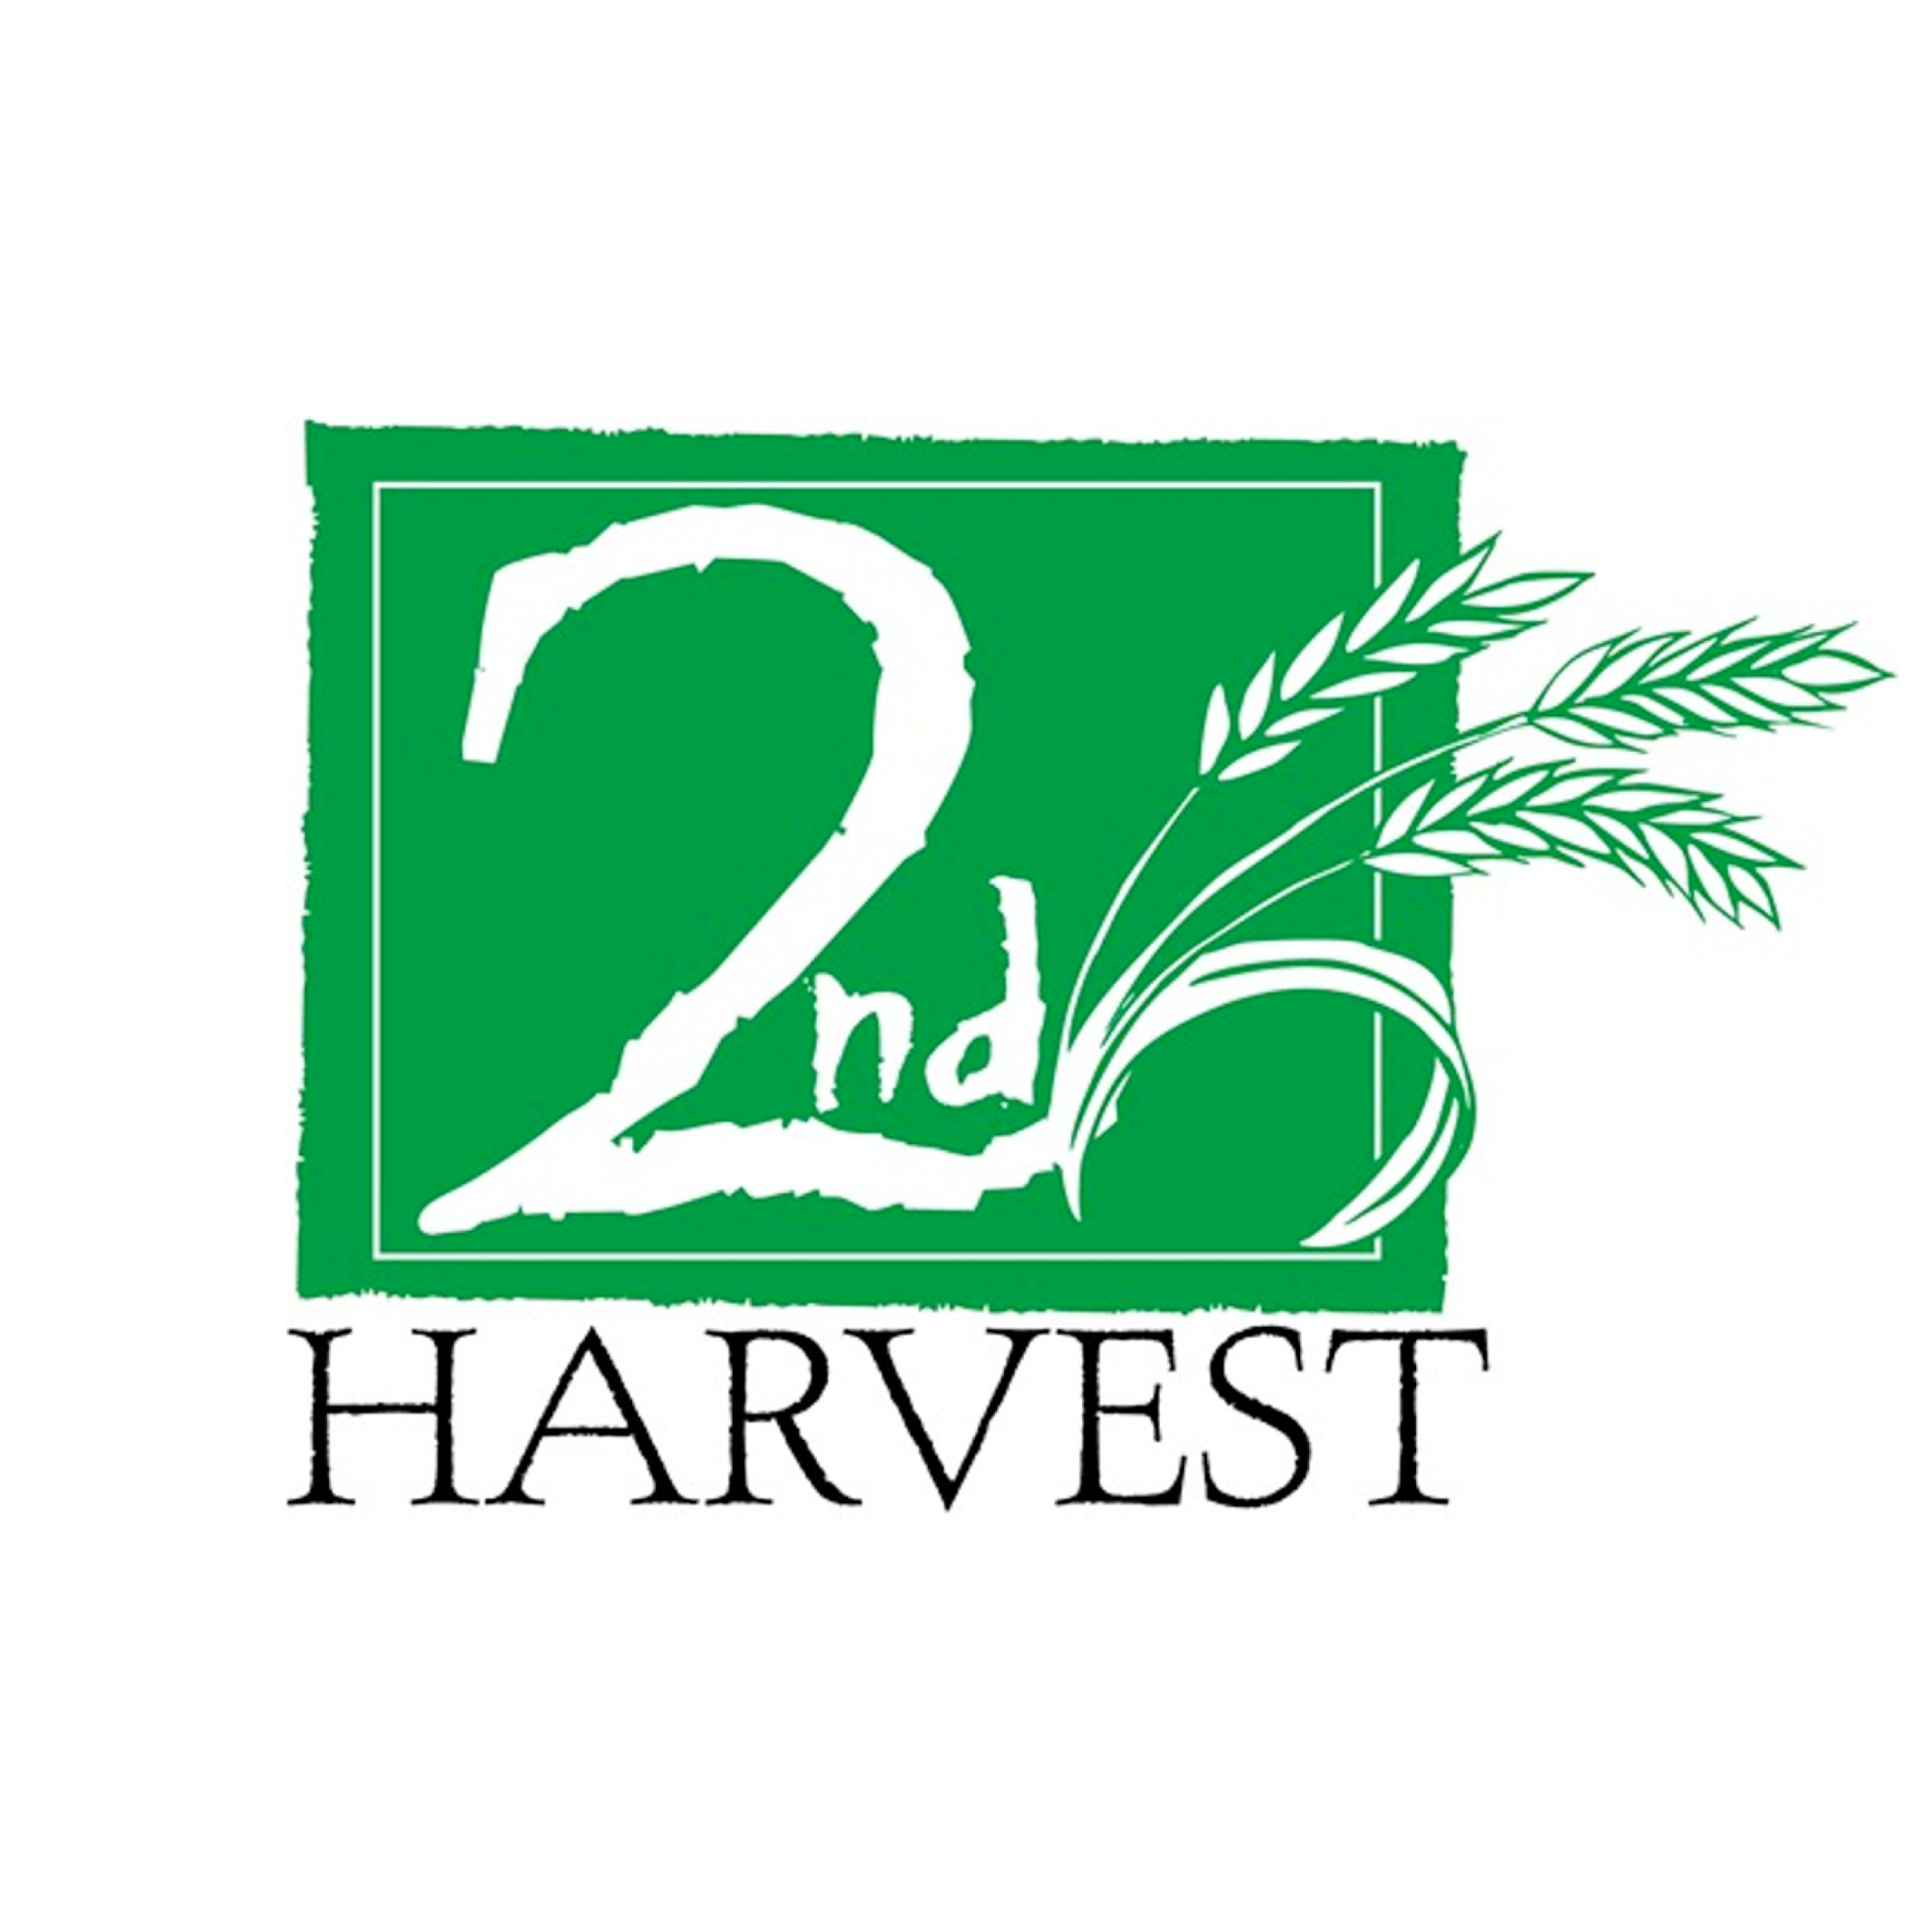 2nd-harvest-01.png